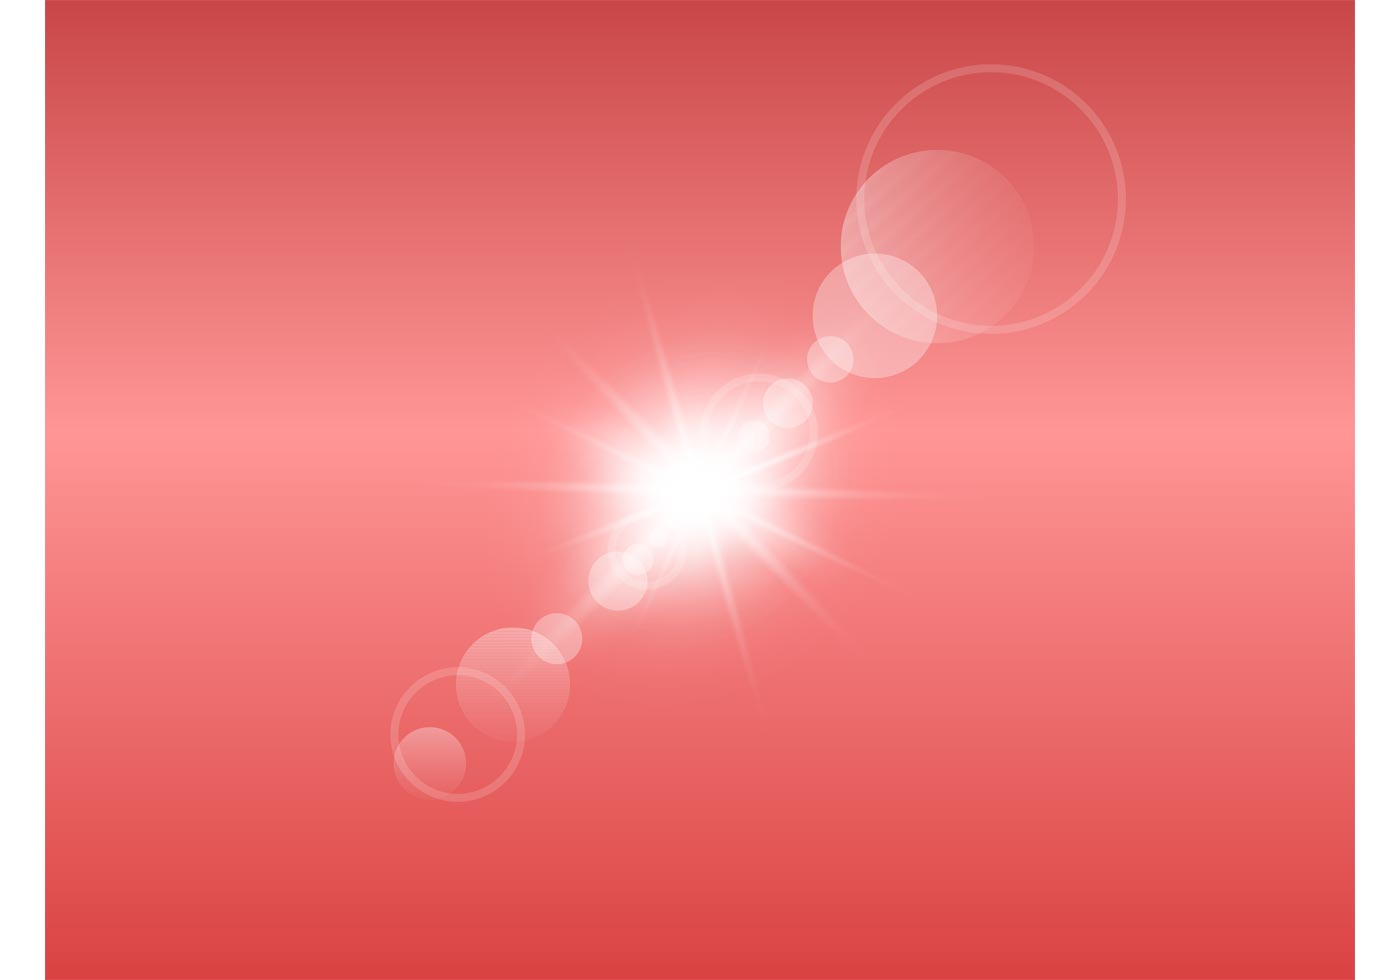 Sun Flare Free Vector Art 5009 Free Downloads